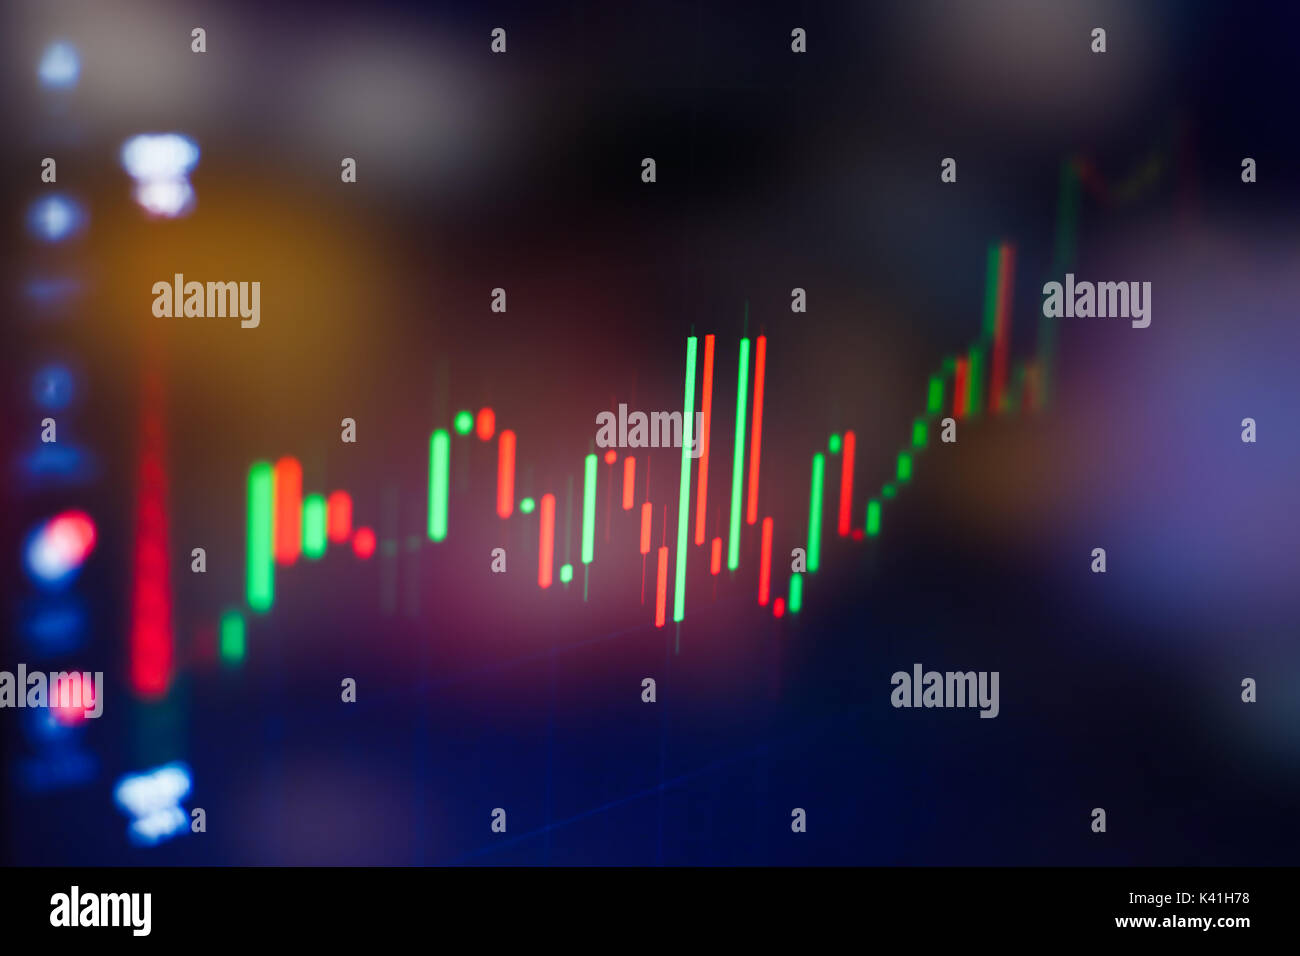 Forex trading stock images